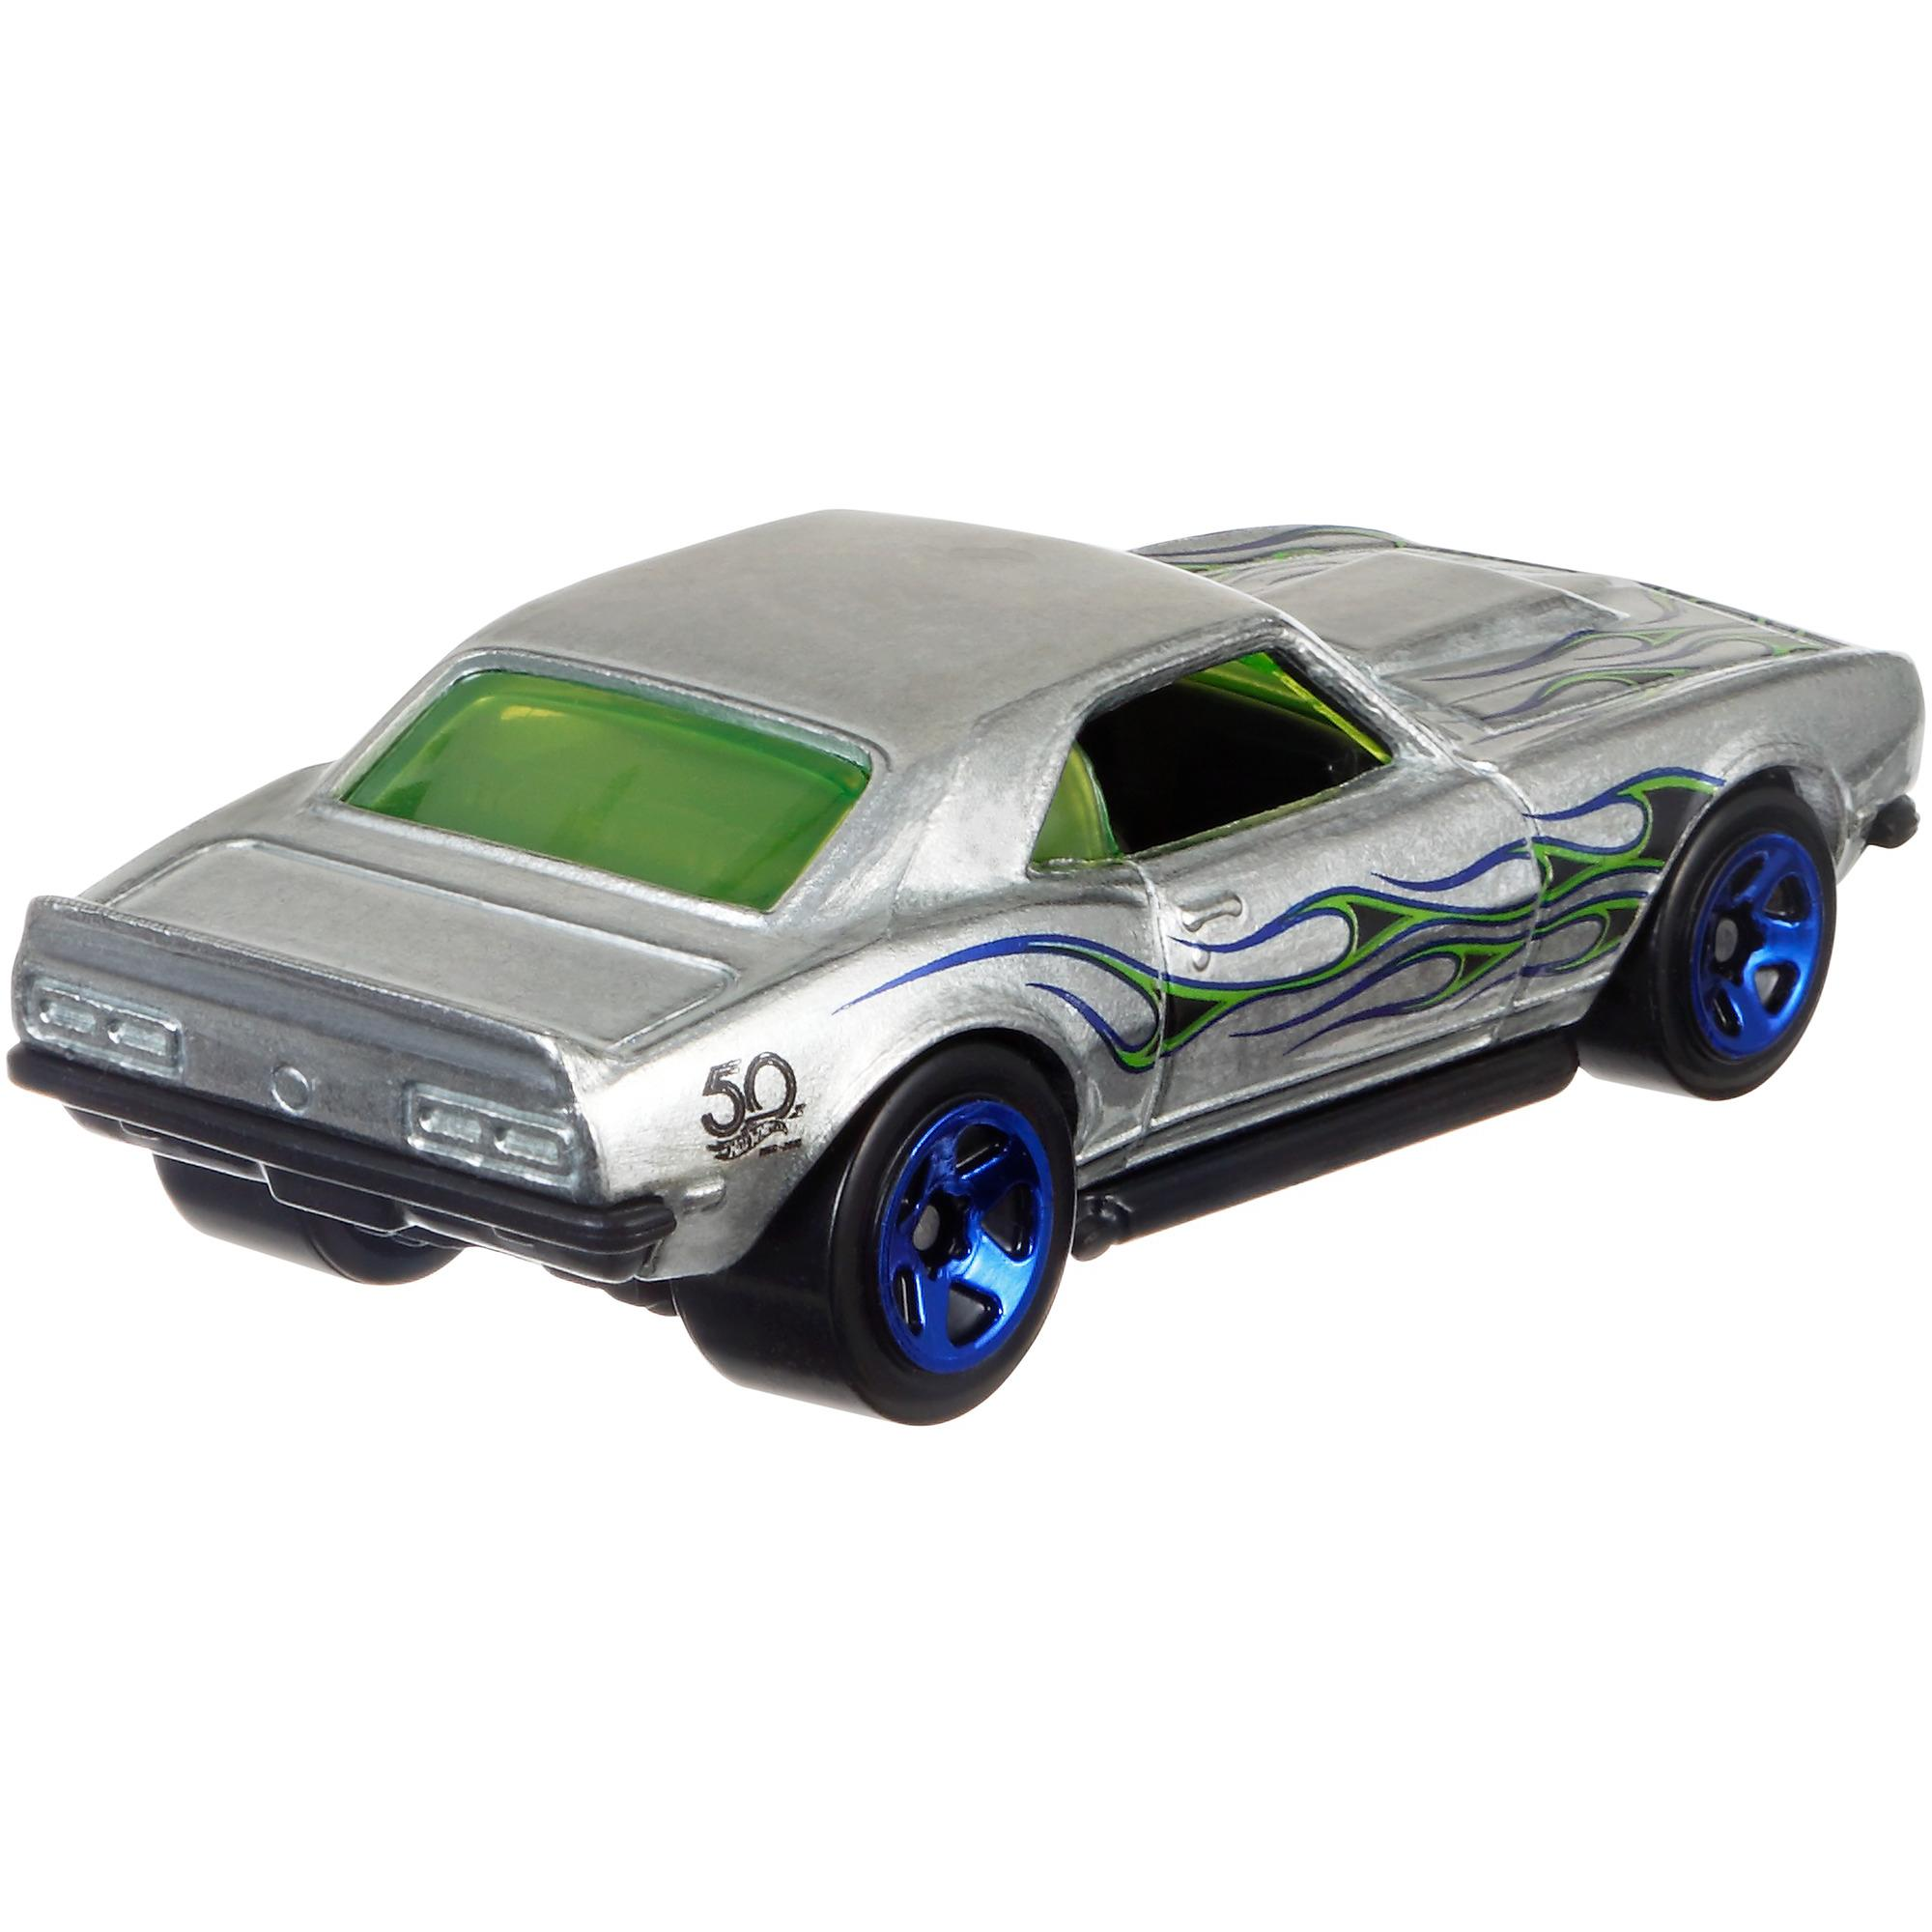 Hot Wheels 50th Anniversary Die-cast Vehicles (Styles May Vary) by Mattel